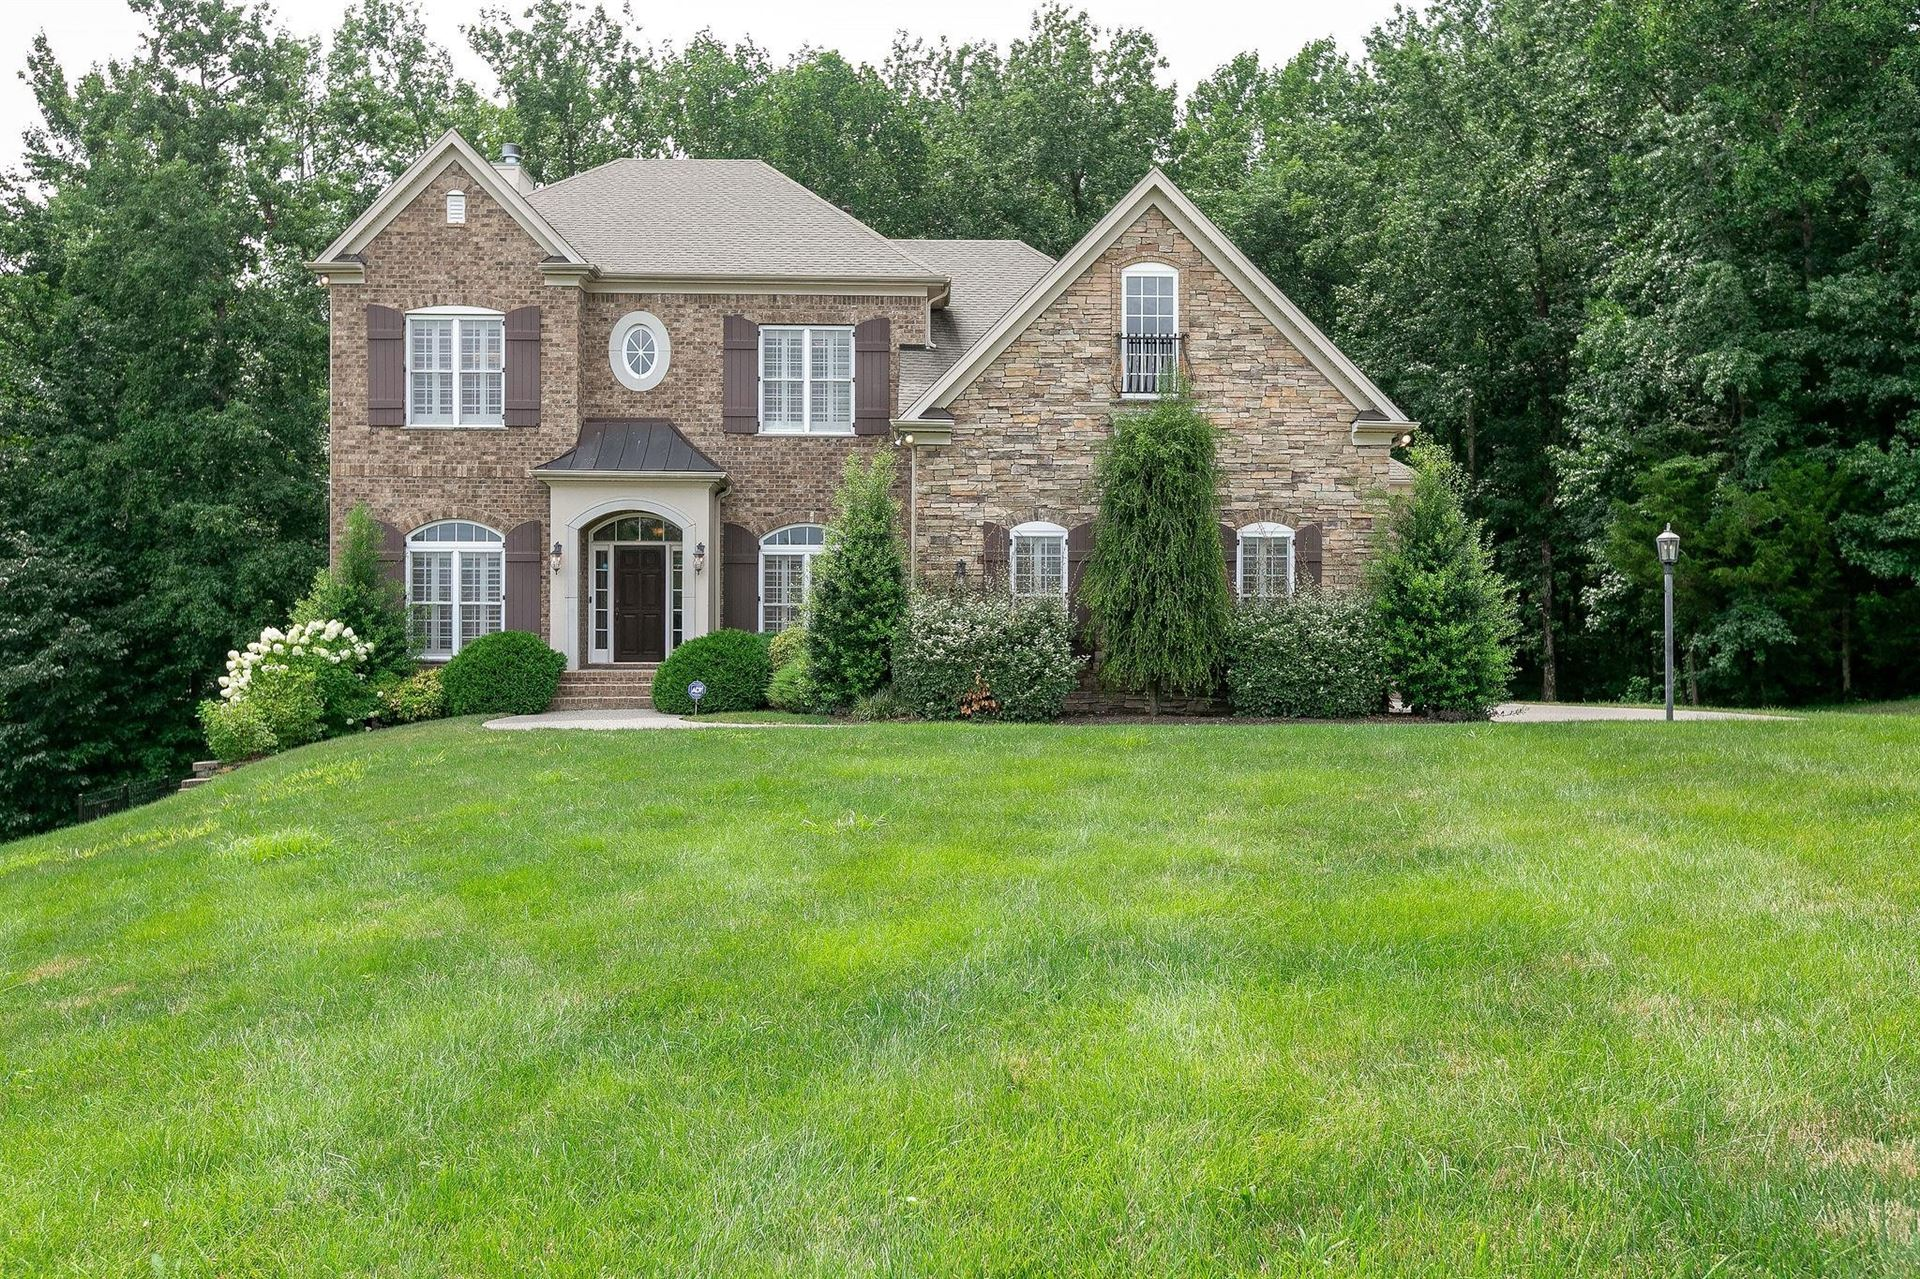 Photo of 871 Arlington Heights Dr, Brentwood, TN 37027 (MLS # 2120662)